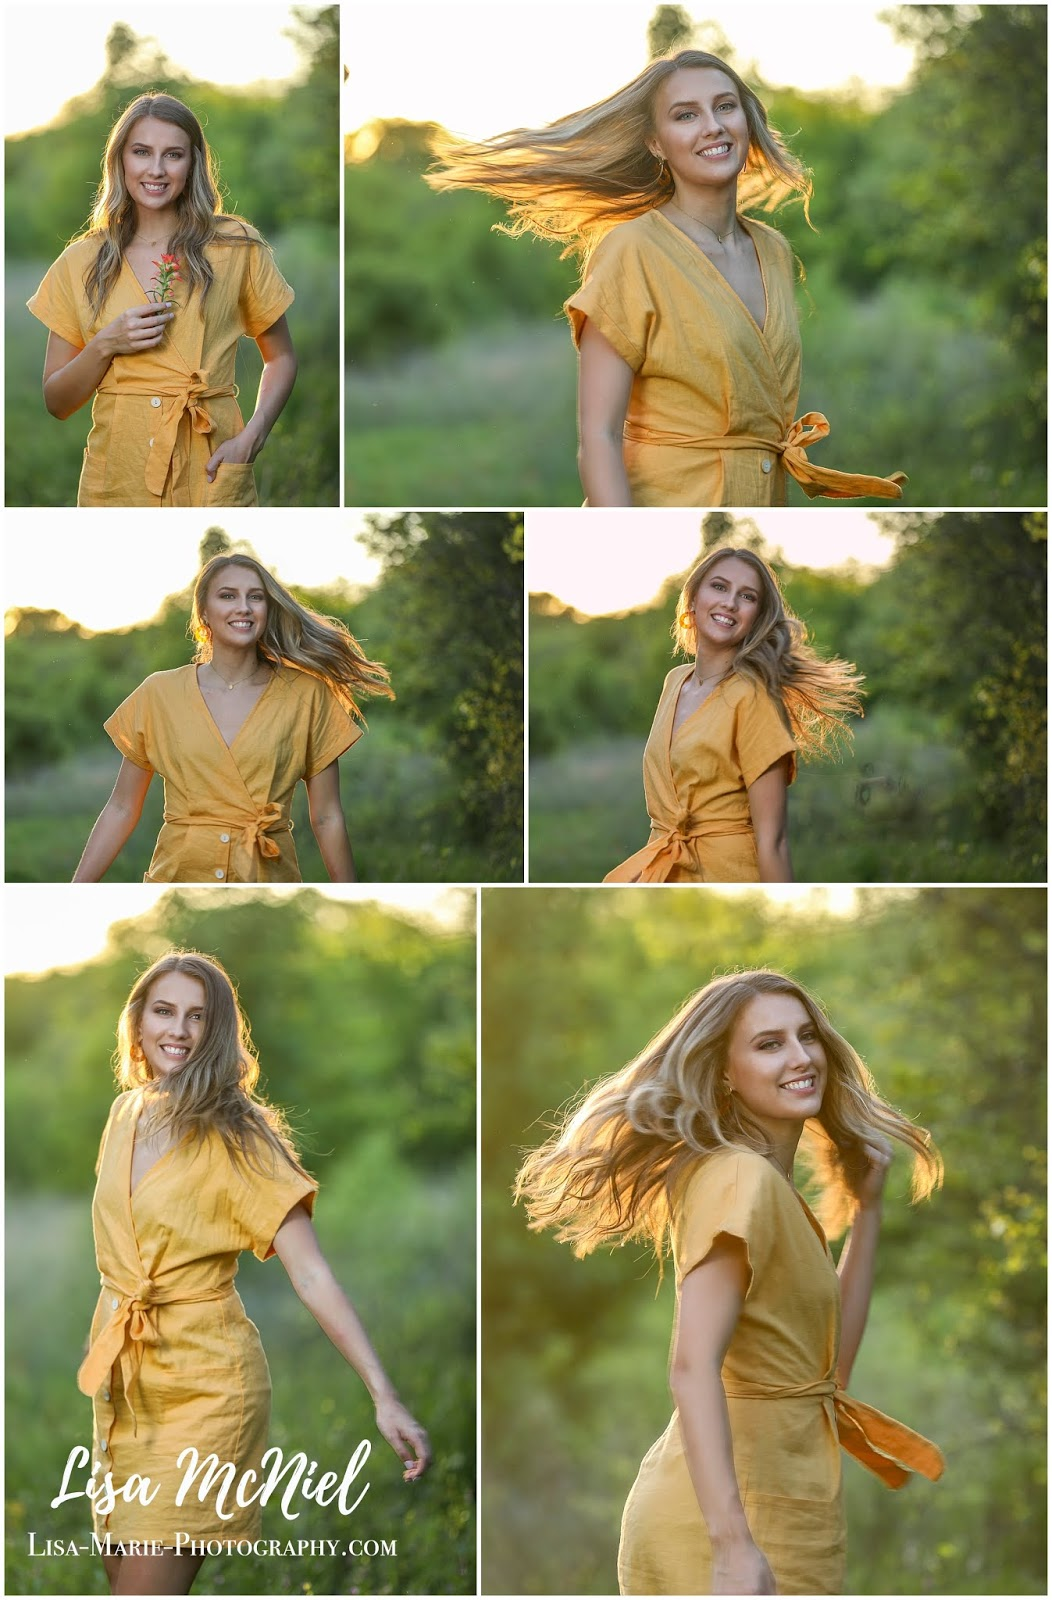 teen girl twirling in yellow dress in field